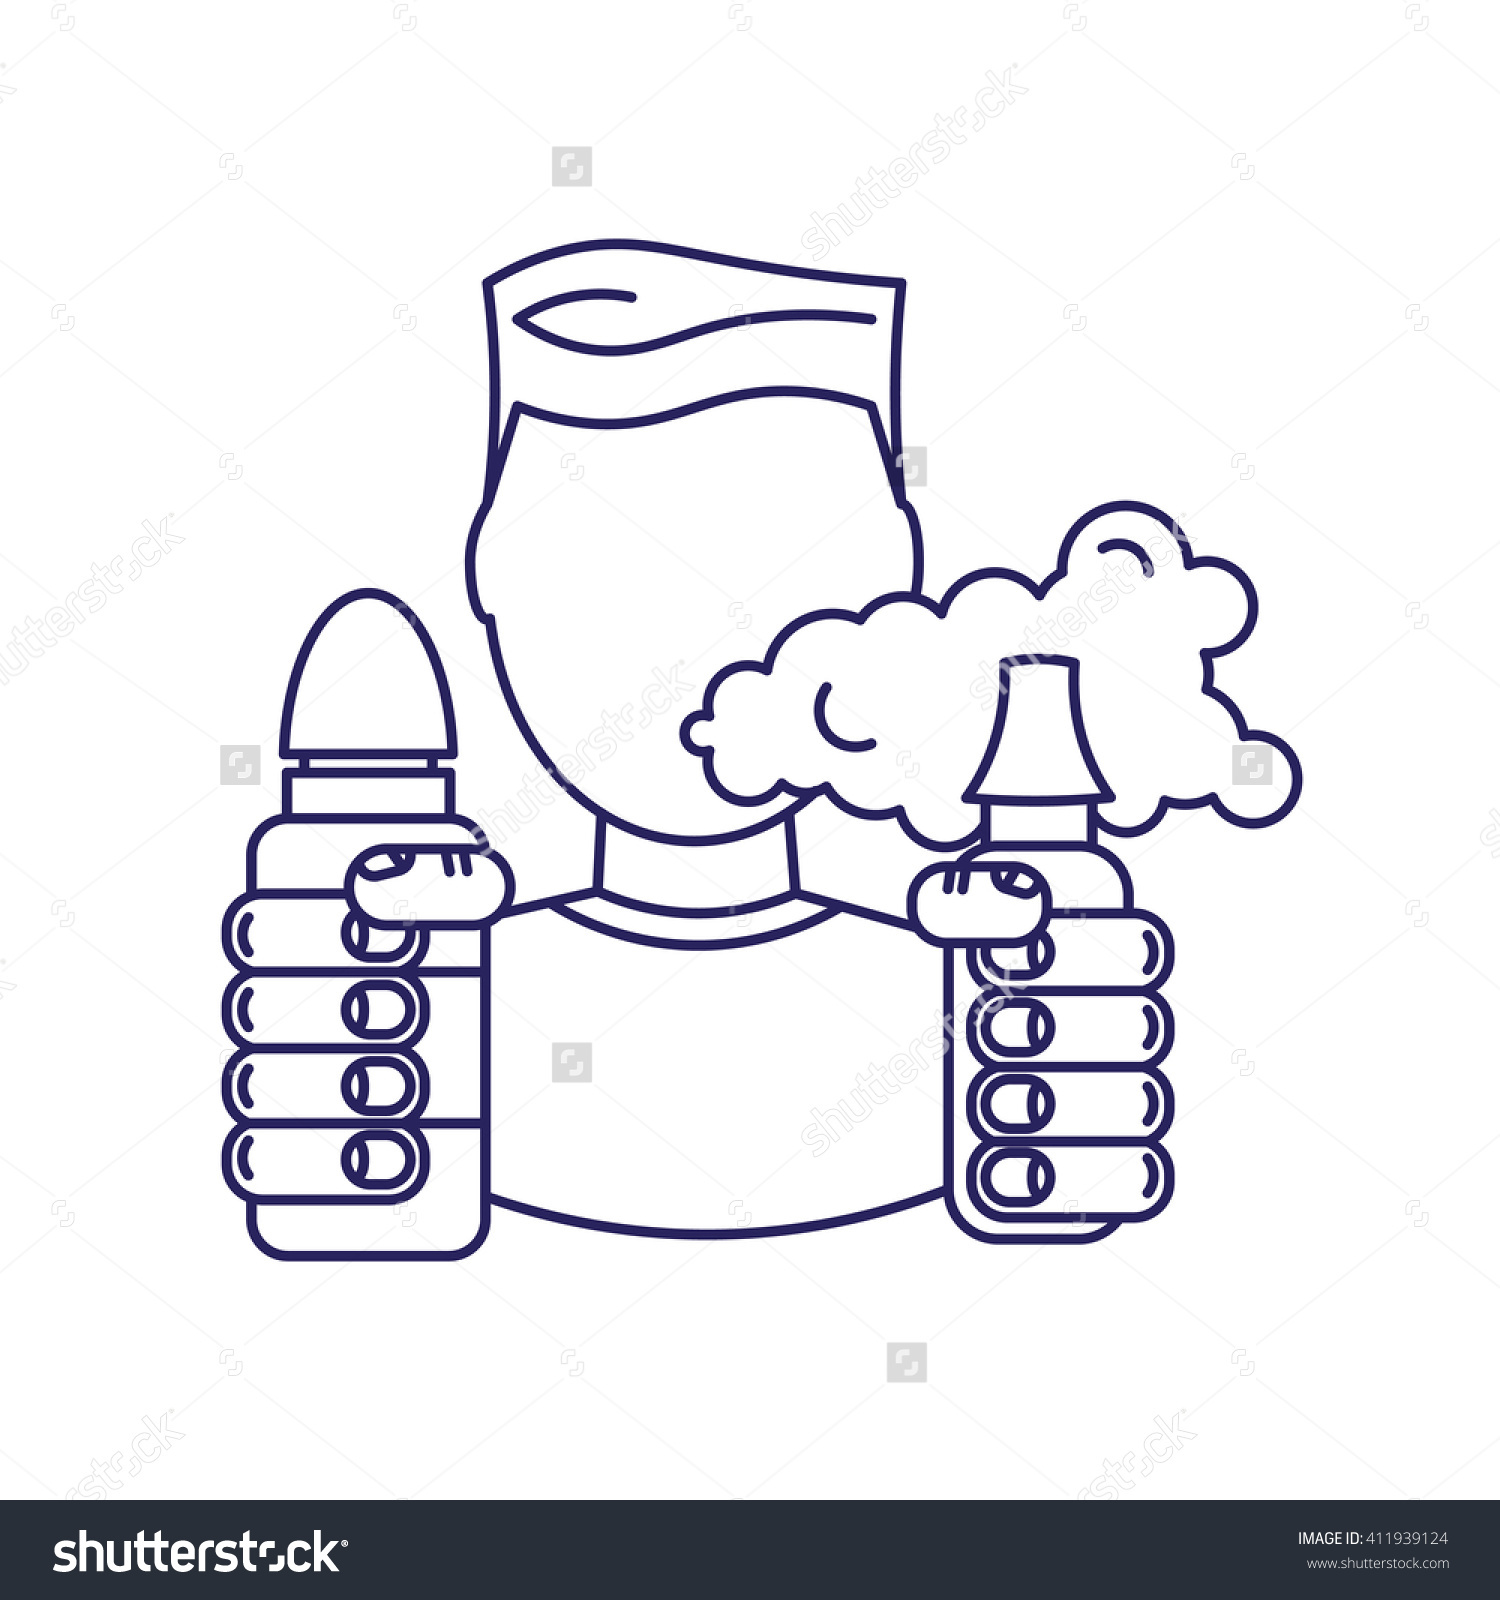 Steam generator clipart Clipground